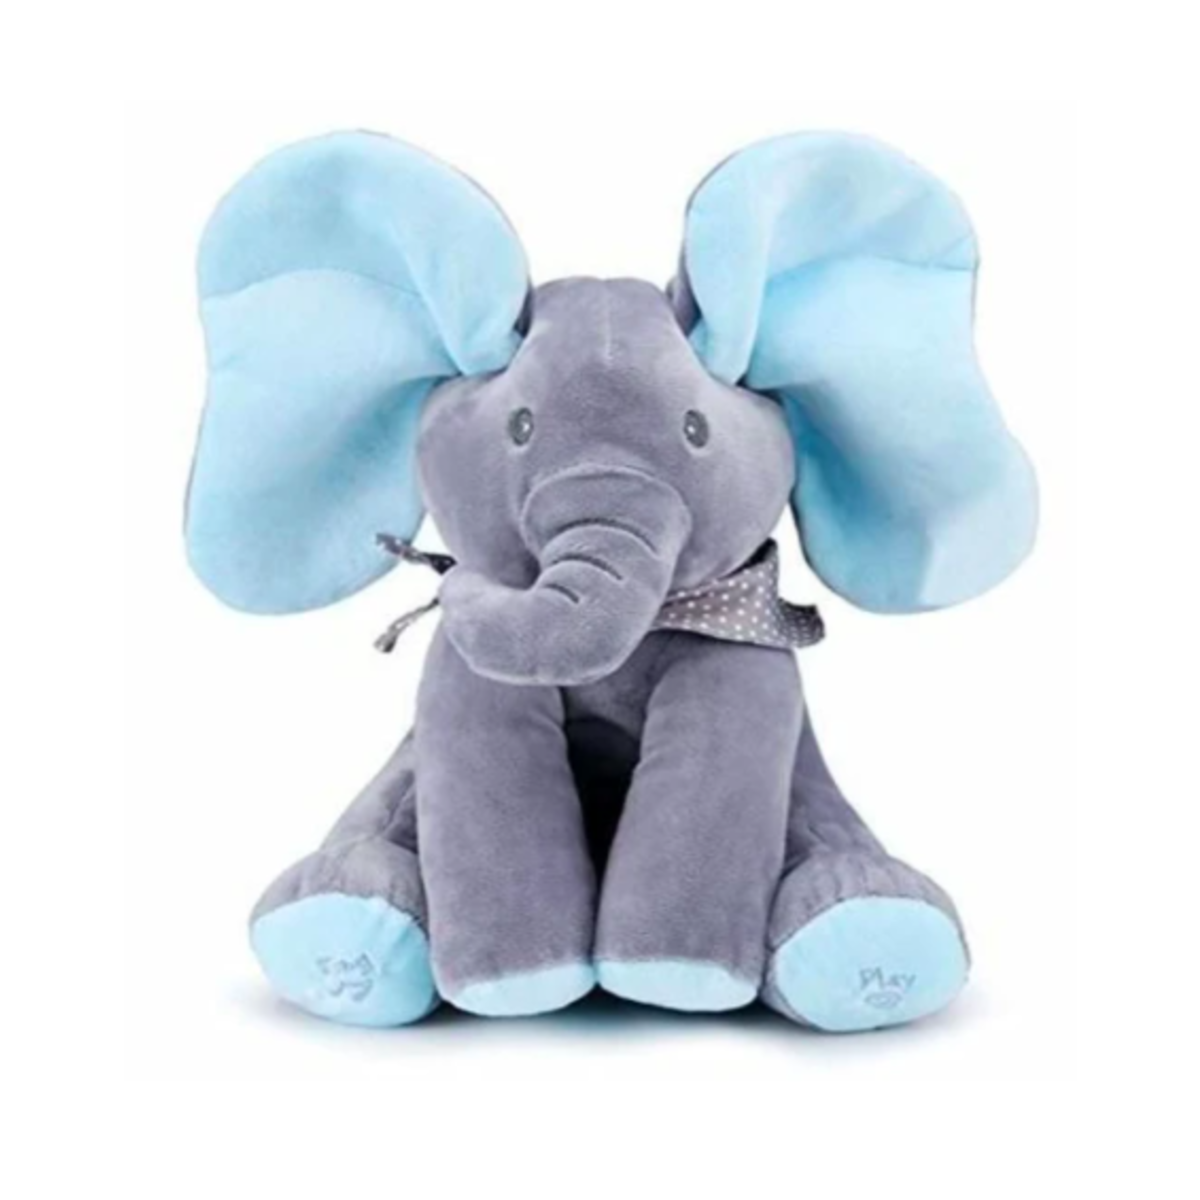 Peek a Boo Animated Stuffed Elephant